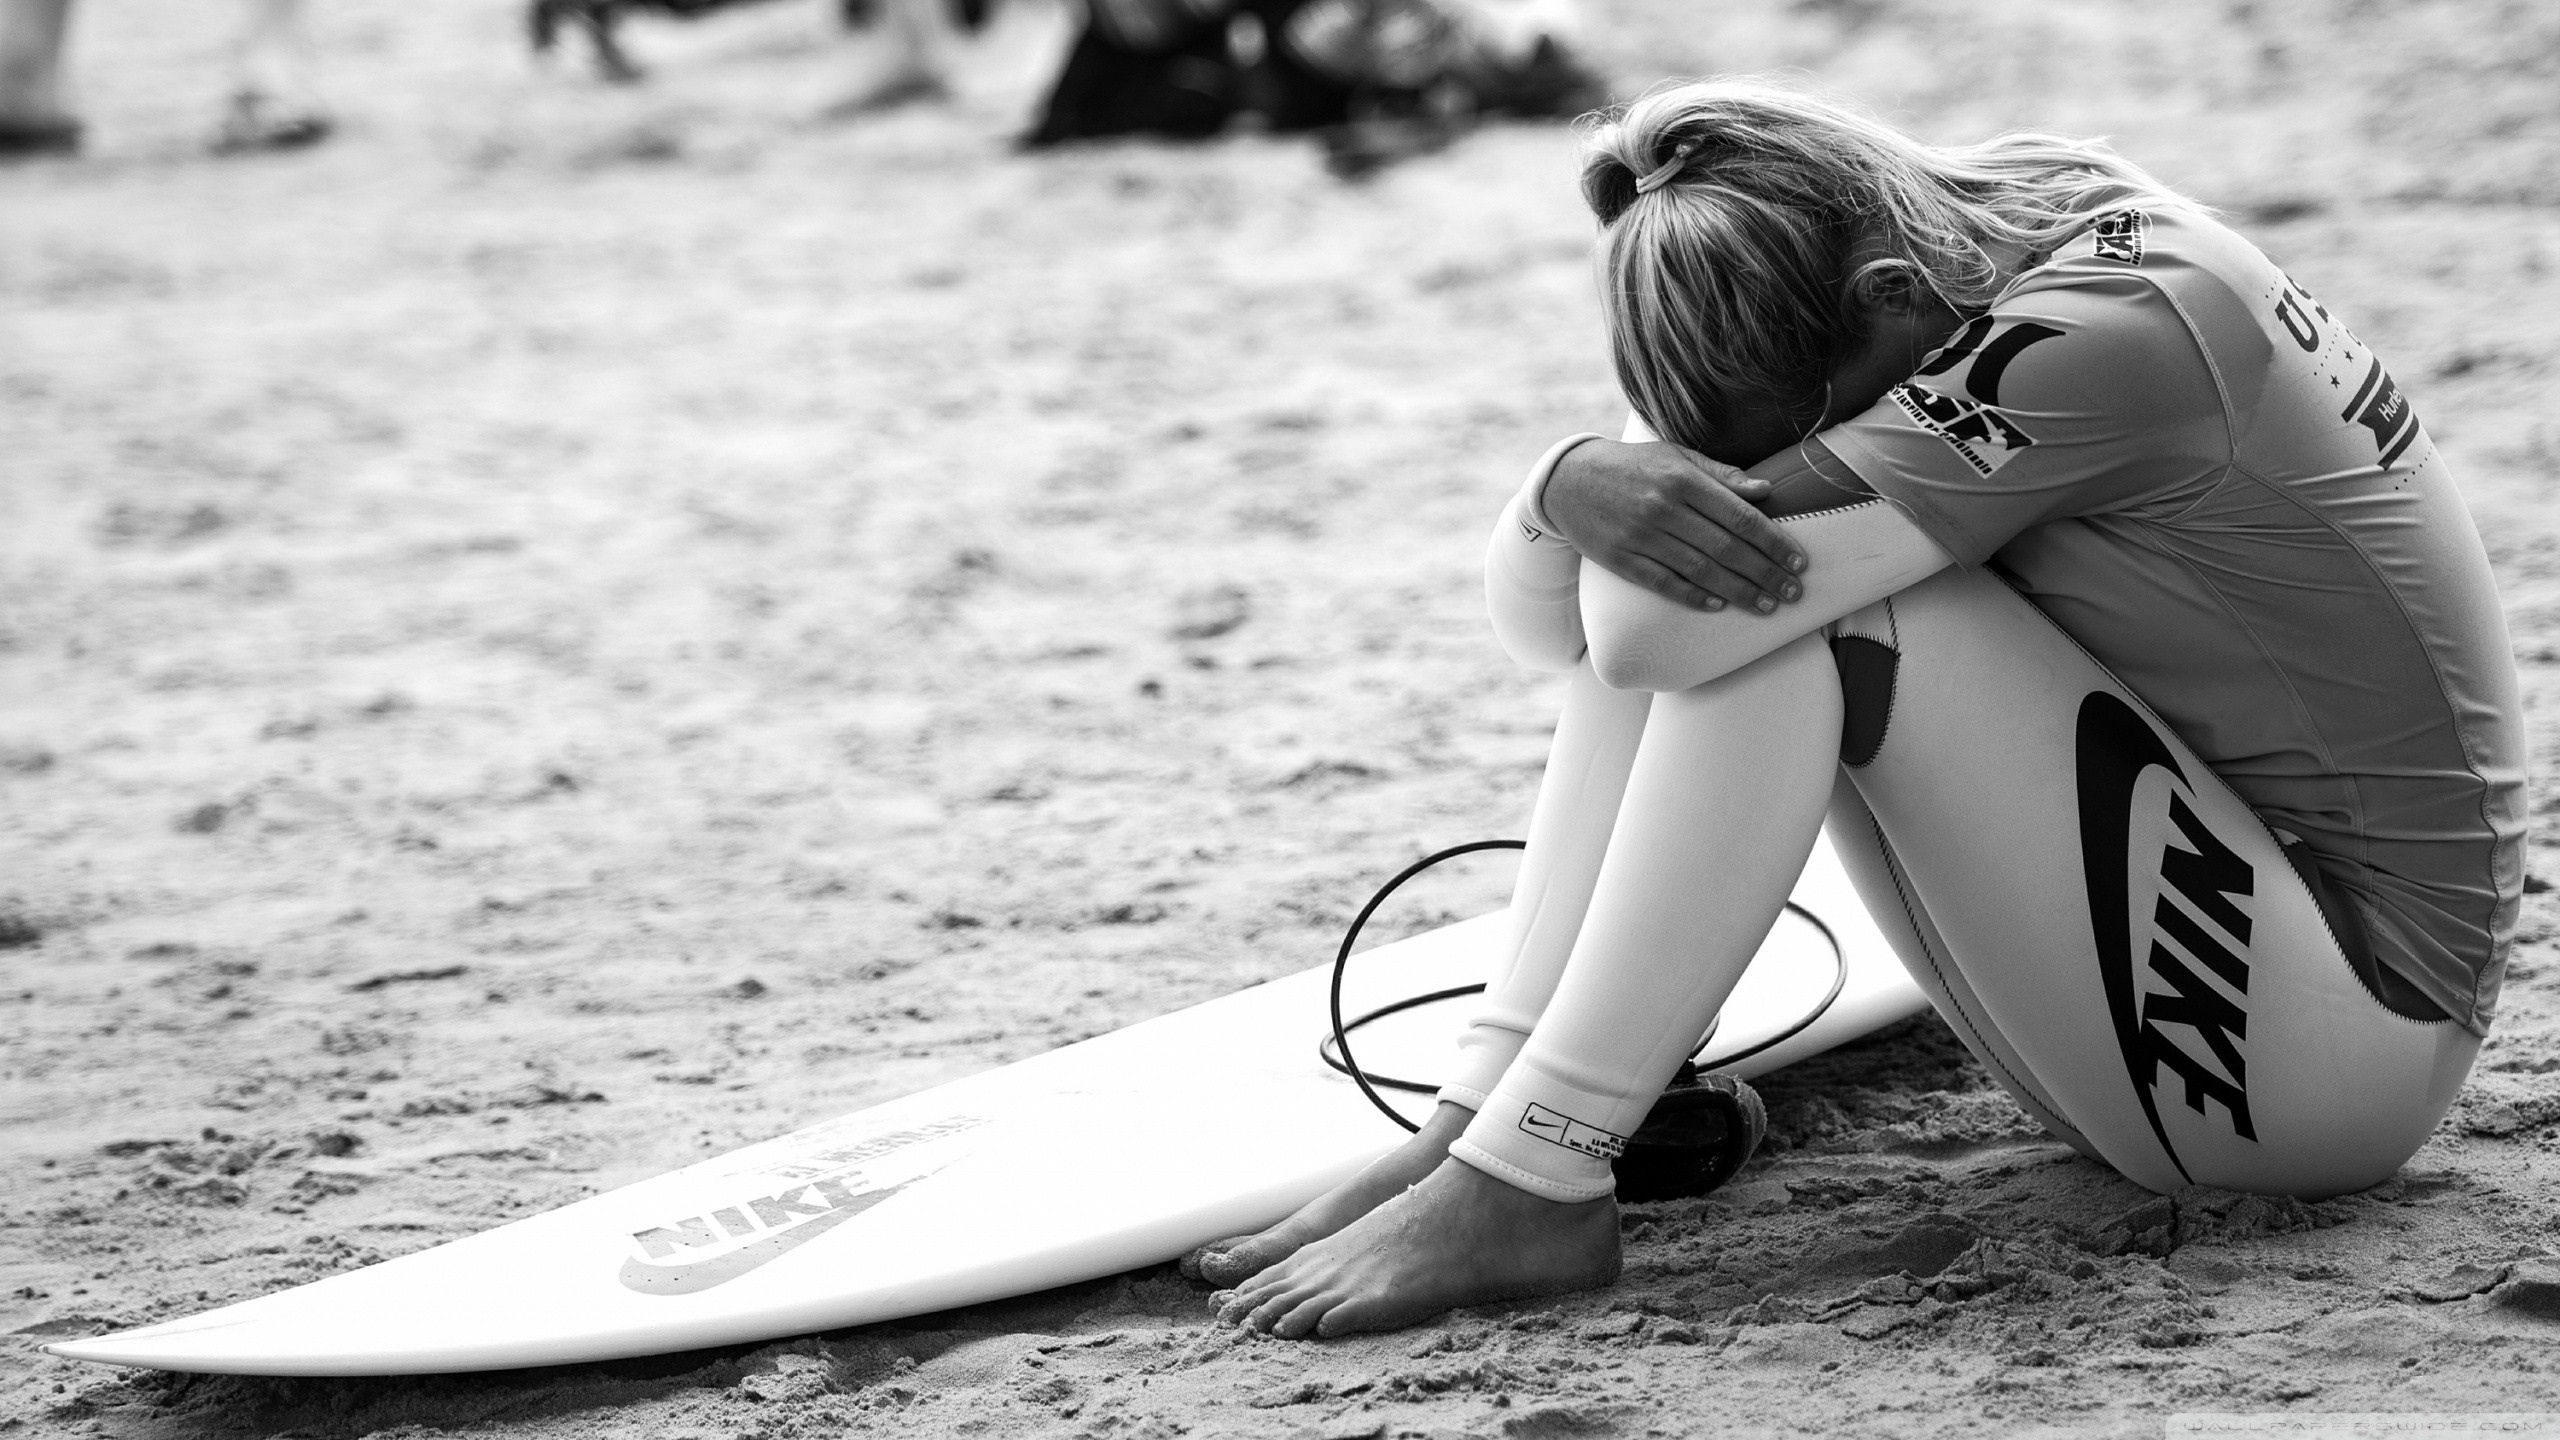 104726 Screensavers and Wallpapers Bw for phone. Download Sports, Serfing, Nike, Girl, Bw, Chb, Surfer pictures for free